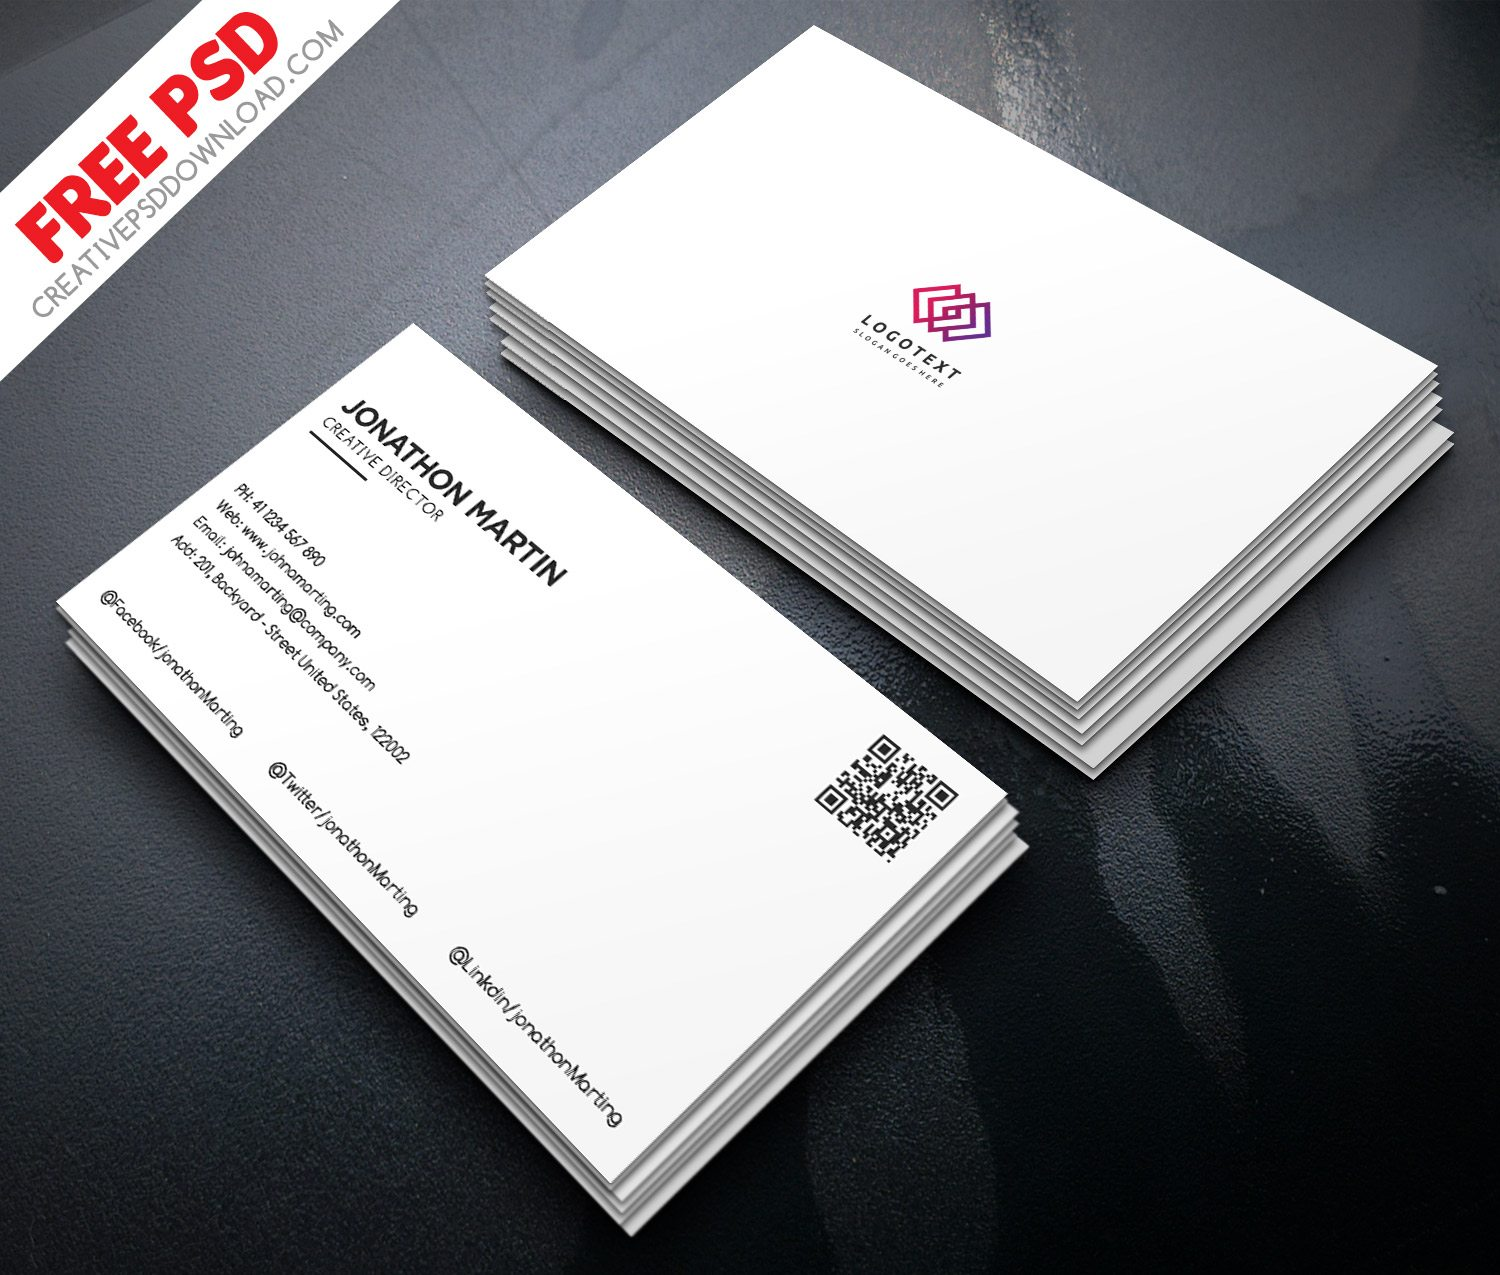 graphic designer business card free psd,business card design,business card design templates,business card dimensions,business card holder,business card maker,business card organizer,business card photoshop template,business card printing,business card size,business card template,business card template free,business card template photoshop,business card template psd,business cards,business cards for real estate,business cards free templates,business cards online,business cards real estate,cheap business cards,corporate visiting card,creative business cards,creative visiting card,custom business cards,elegant business cards,free business card templates,free business cards,free psd flyer,modern business cards,online printing,photography business cards,photoshop business card template,print,print business cards,psd card,real estate business cards,real estate cards,real estate visiting card design,template business card,template for business cards,tri fold brochure template,visiting card,visiting card design free download,visiting card design psd,visiting card images,visiting card psd,visiting card psd free download,visiting card template,visiting card templates,visiting cards templates,psd daddy,psd freebies,free psd download,creative psd download,download psd,psddaddy,best visiting card,business card design free,business card design ideas,business card format,business cards free,card design,digital business card,fashion business cards,graphic design,how to design a business card,i card design,logo design,loyalty cards,make your own business cards,name card design,premium business cards,printable business cards,transparent visiting card,visiting card design,,black,bundle,business card,business card psd,card psd,color visiting cards,cyan,green,i card,meganta,office card,office card bundle,office card template,psd bundle,red,calling card,free psd,identity card,psd template,business card,free psd,print design,printing design,rgba,visiting card